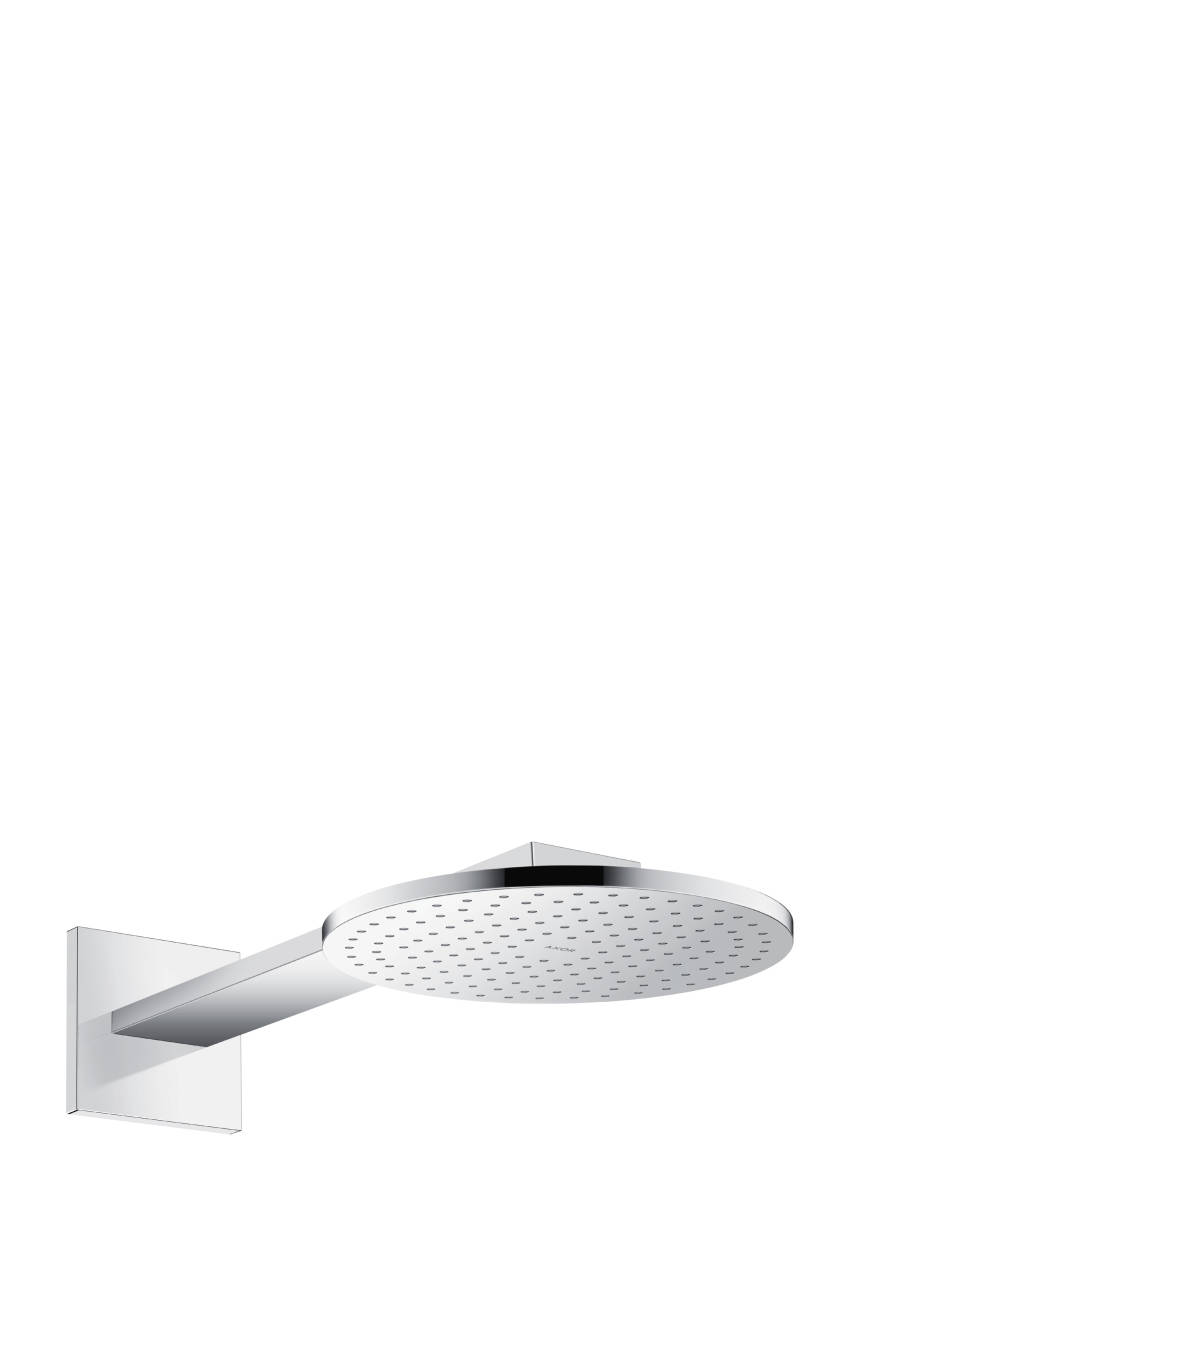 Overhead shower 250 1jet with shower arm, Chrome, 35284000